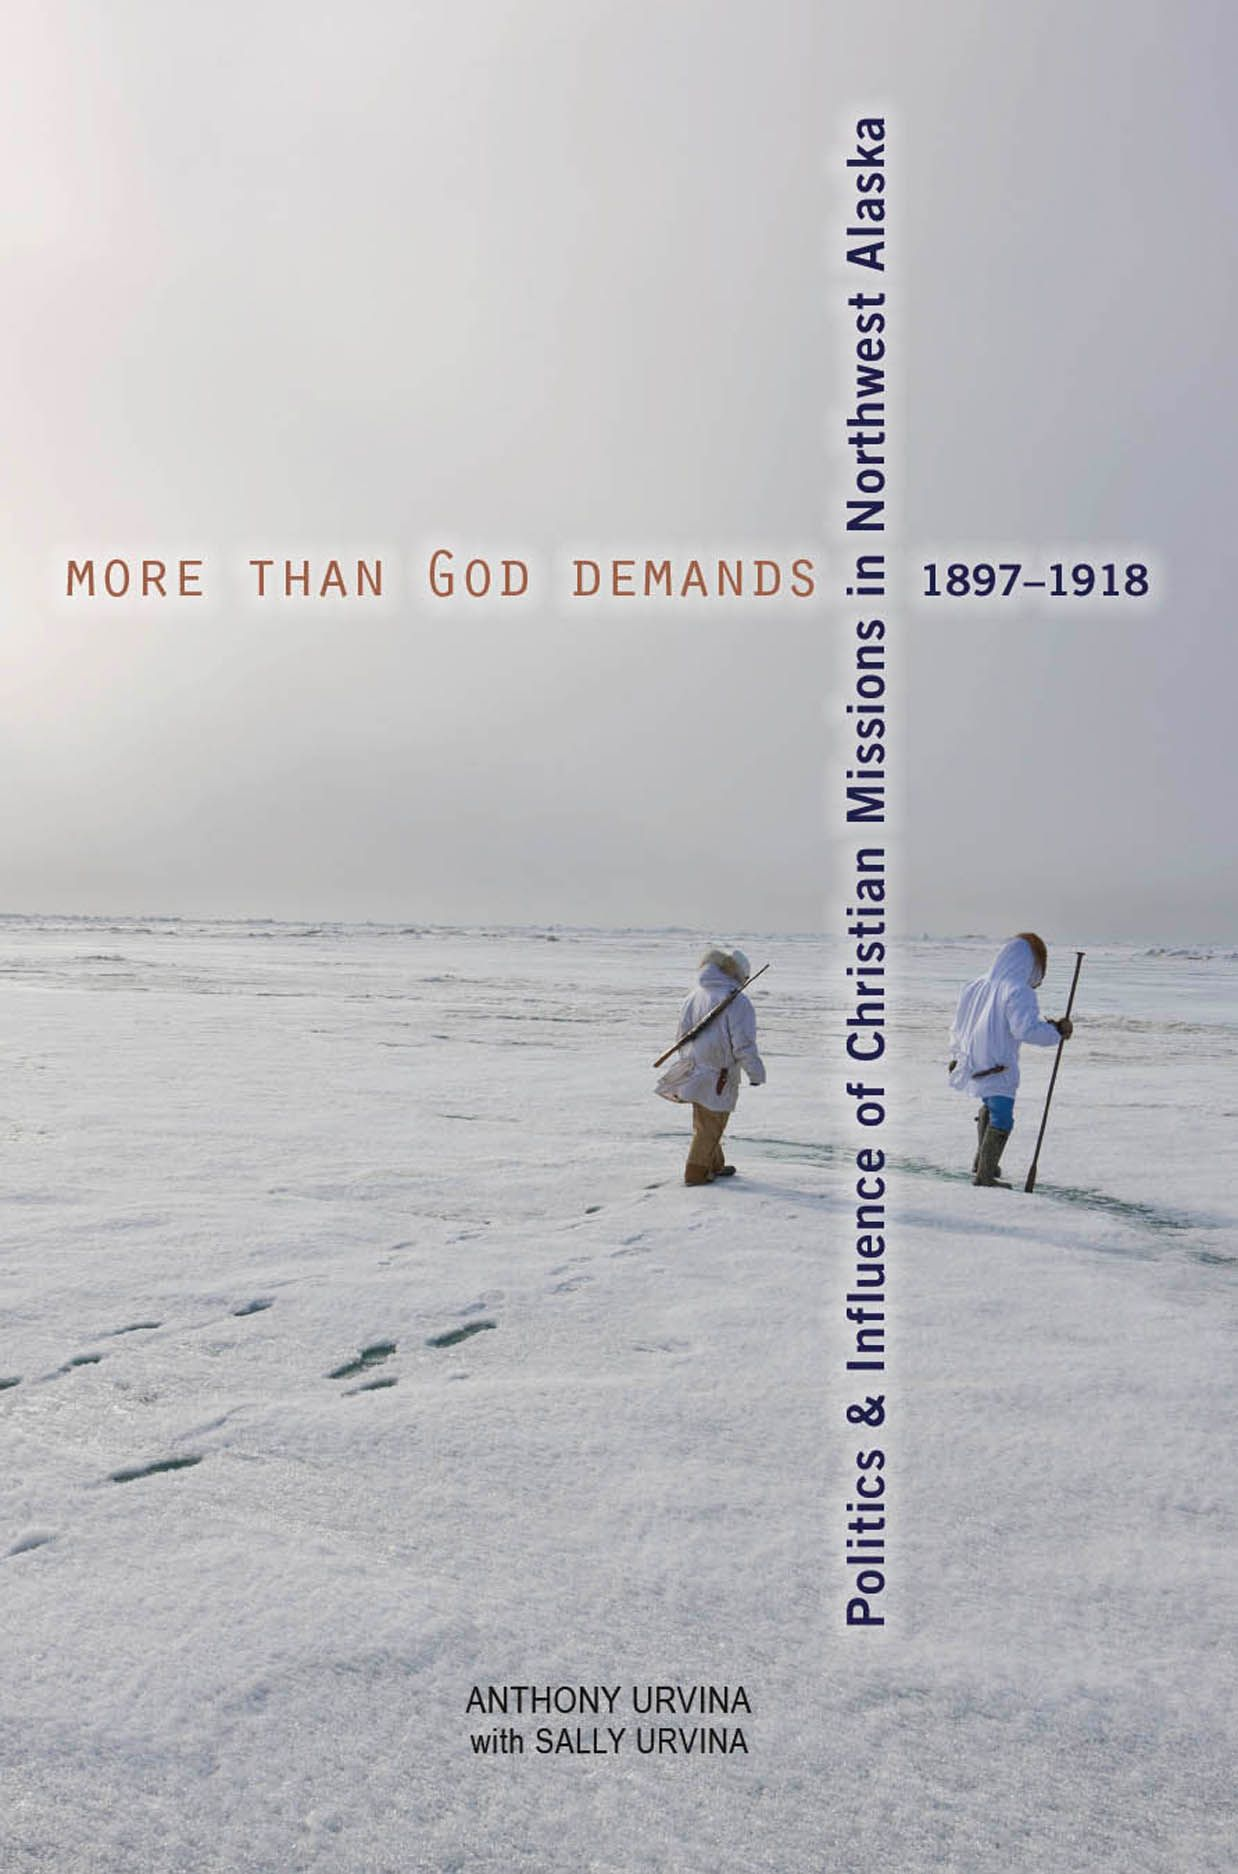 More Than God Demands: Politics and Influence of Christian Missions in Northwest Alaska, 1897-1918